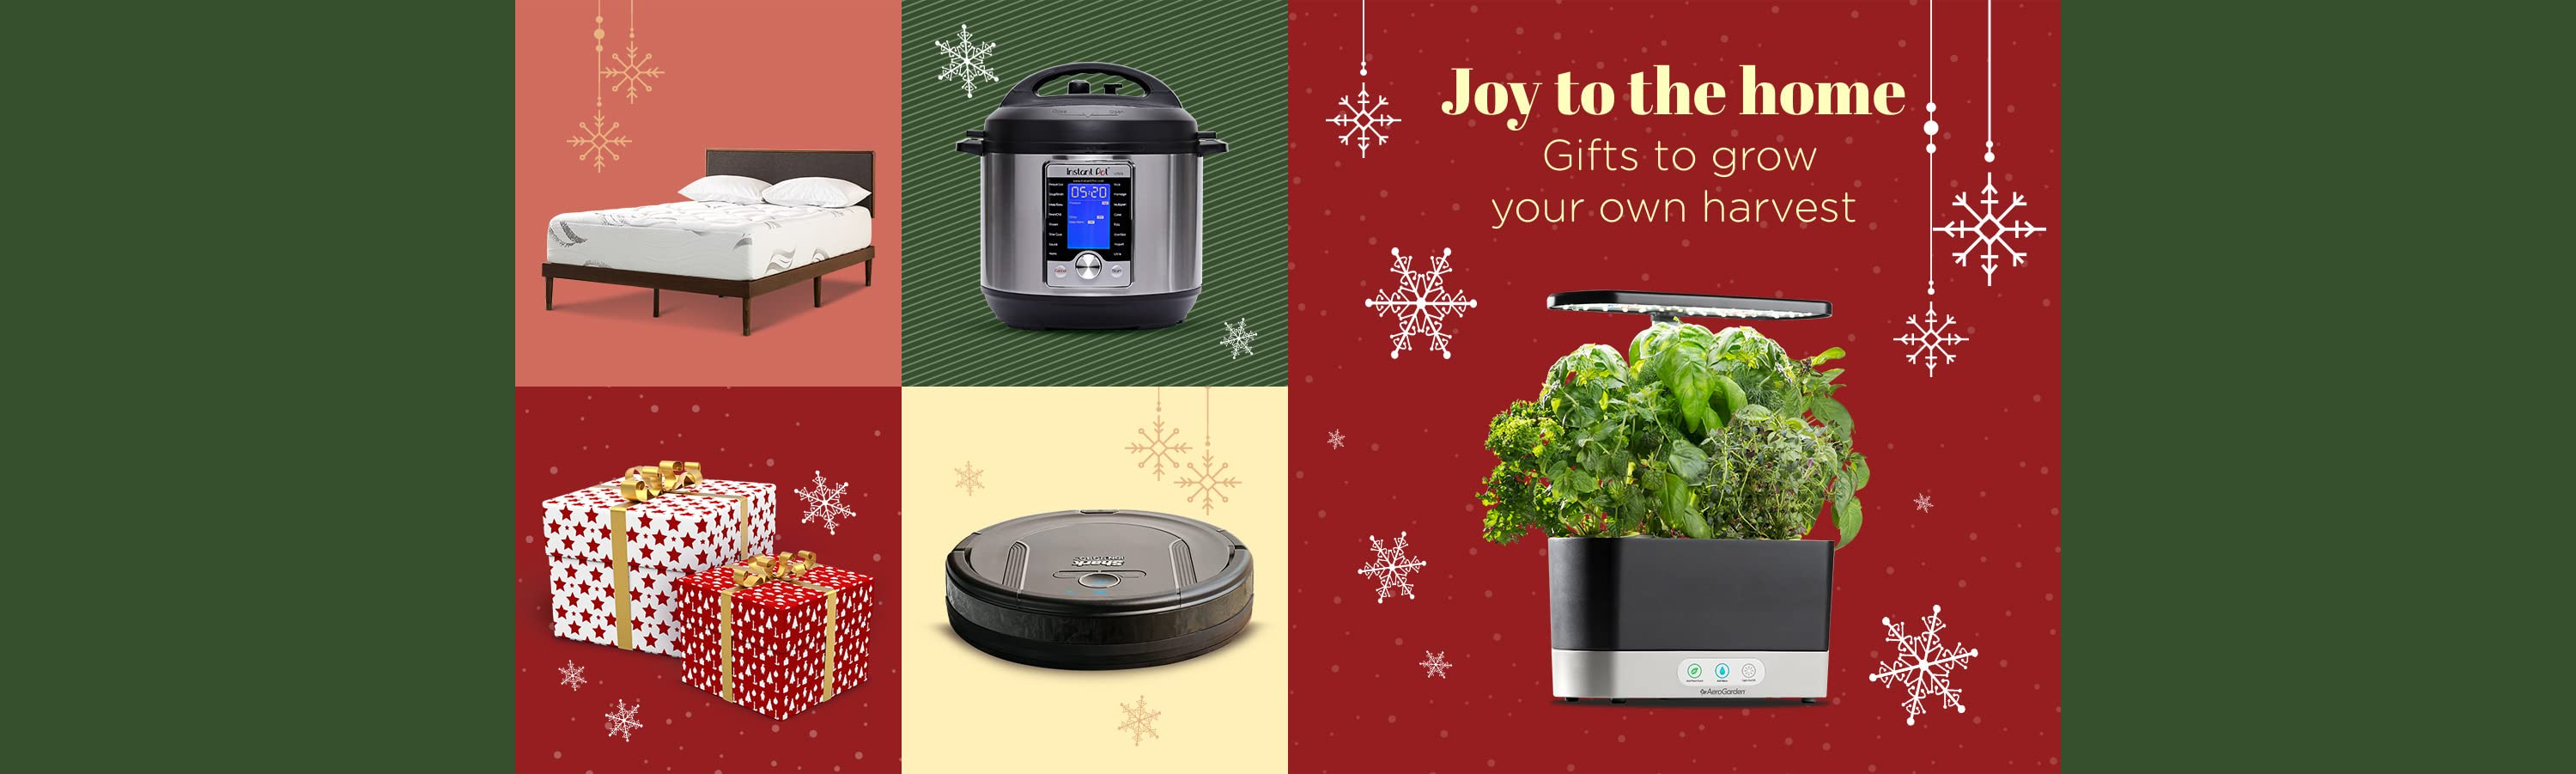 Joy to the home  Gifts to grow your own harvest